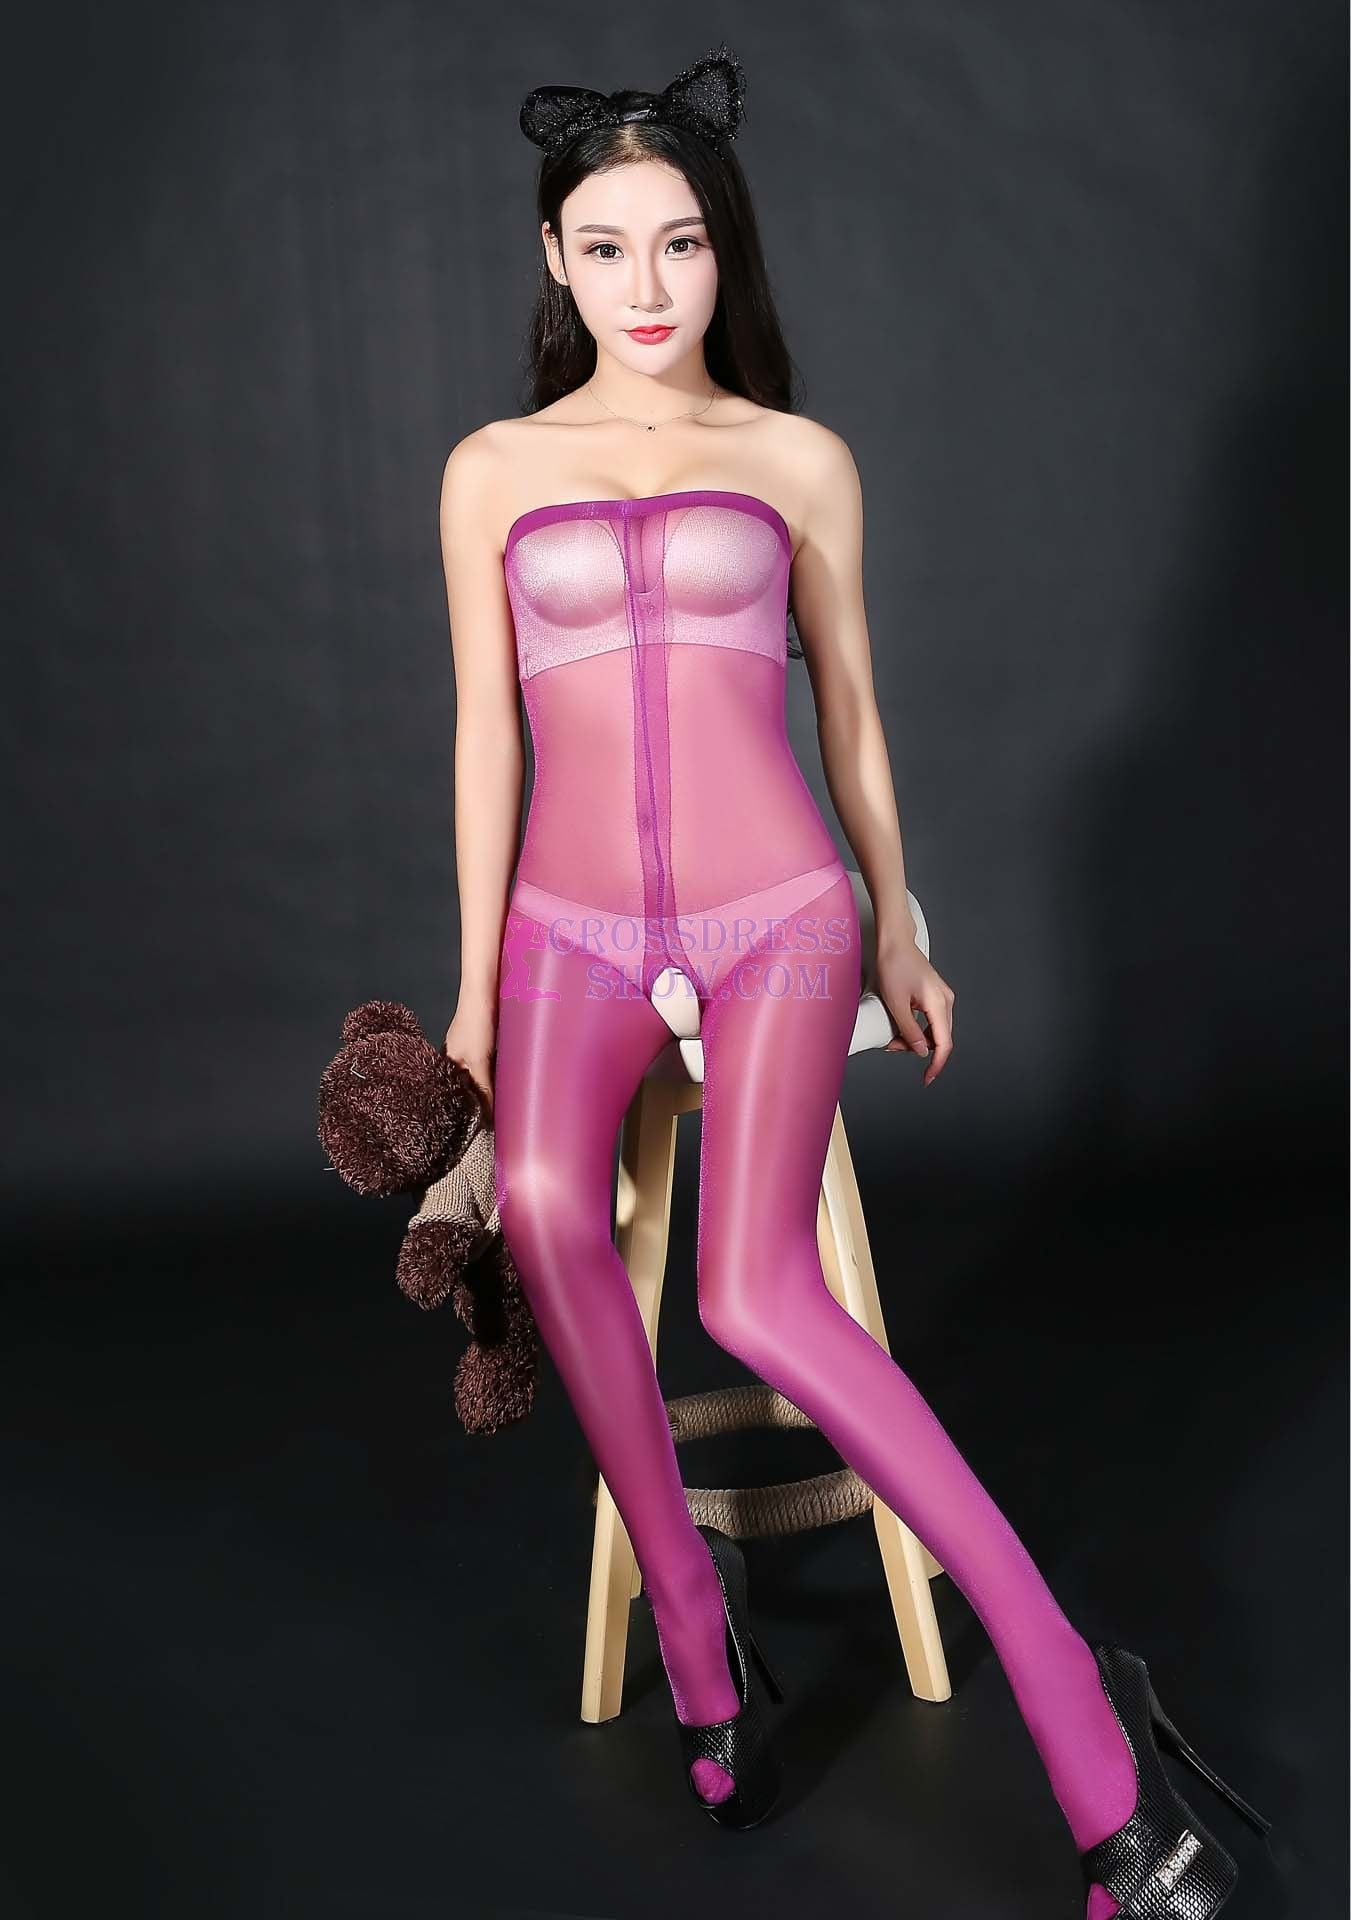 Wrapped Chest Glitter Transparent Pantyhose 4690